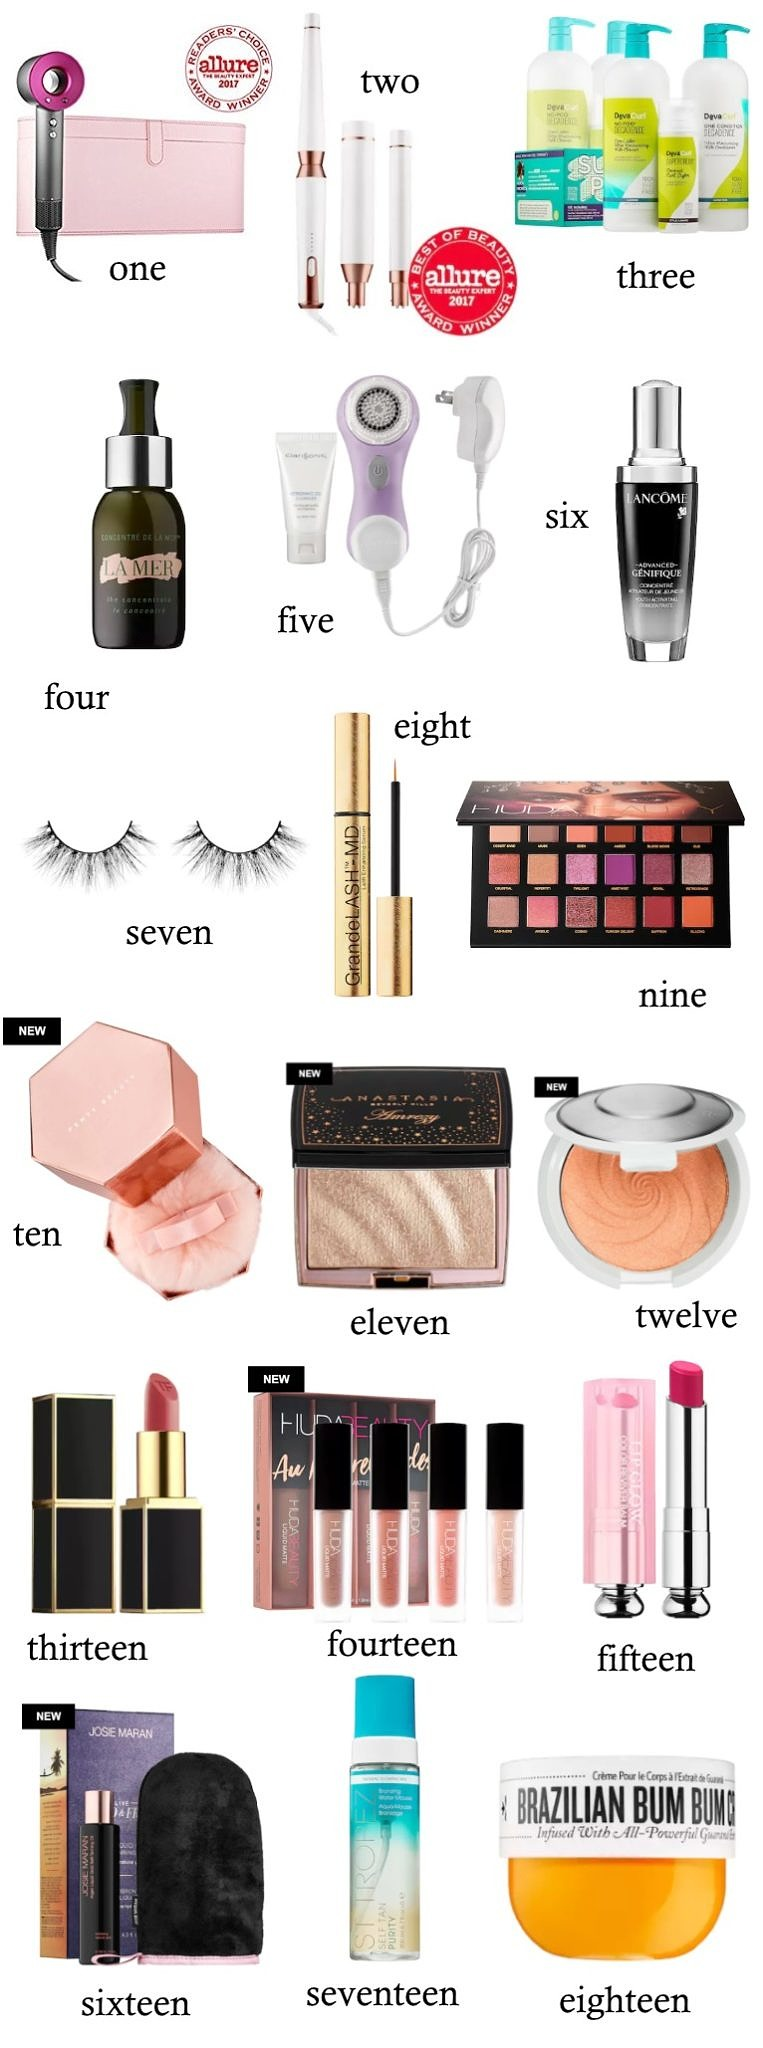 It's Sephora's Spring Bonus Event! Shop your favorite beauty goods all at one place. Make sure to sign as a Beauty Insider to receive exclusive discounts and promotions. Click here to see my curated list of eighteen top beauty products from Sephora that will help you look beautiful from your head down to your toe!